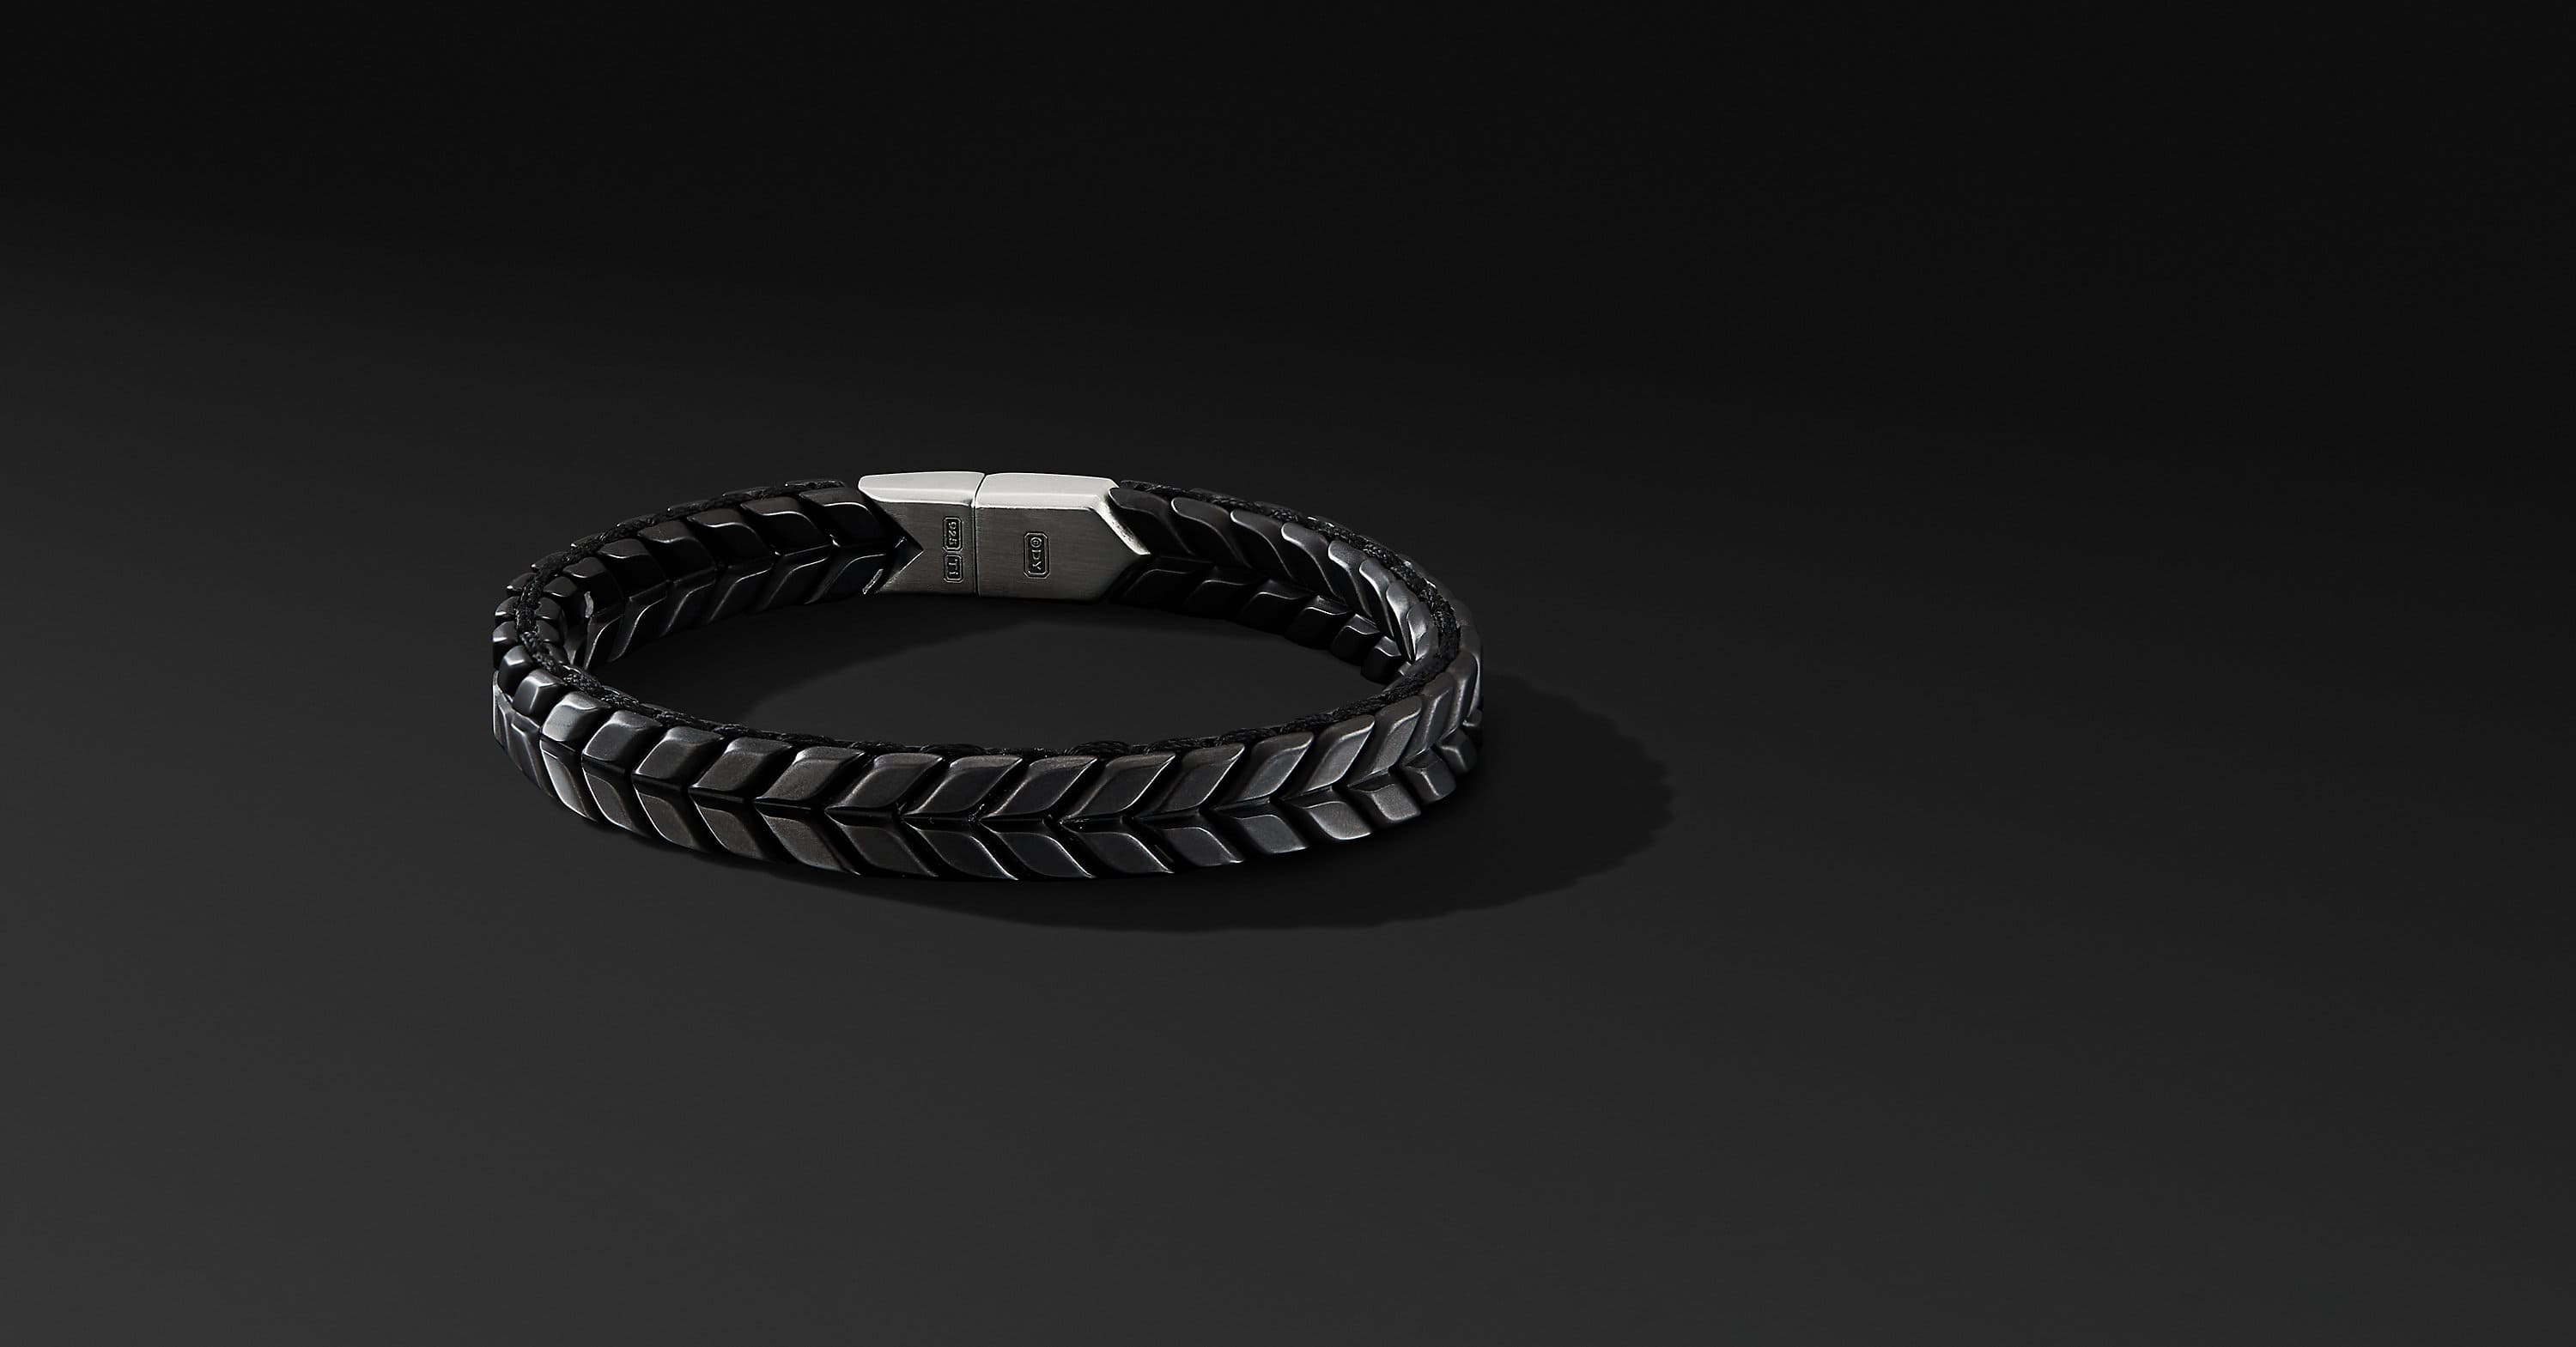 Chevron Woven Bracelet in Black Titanium, 9mm